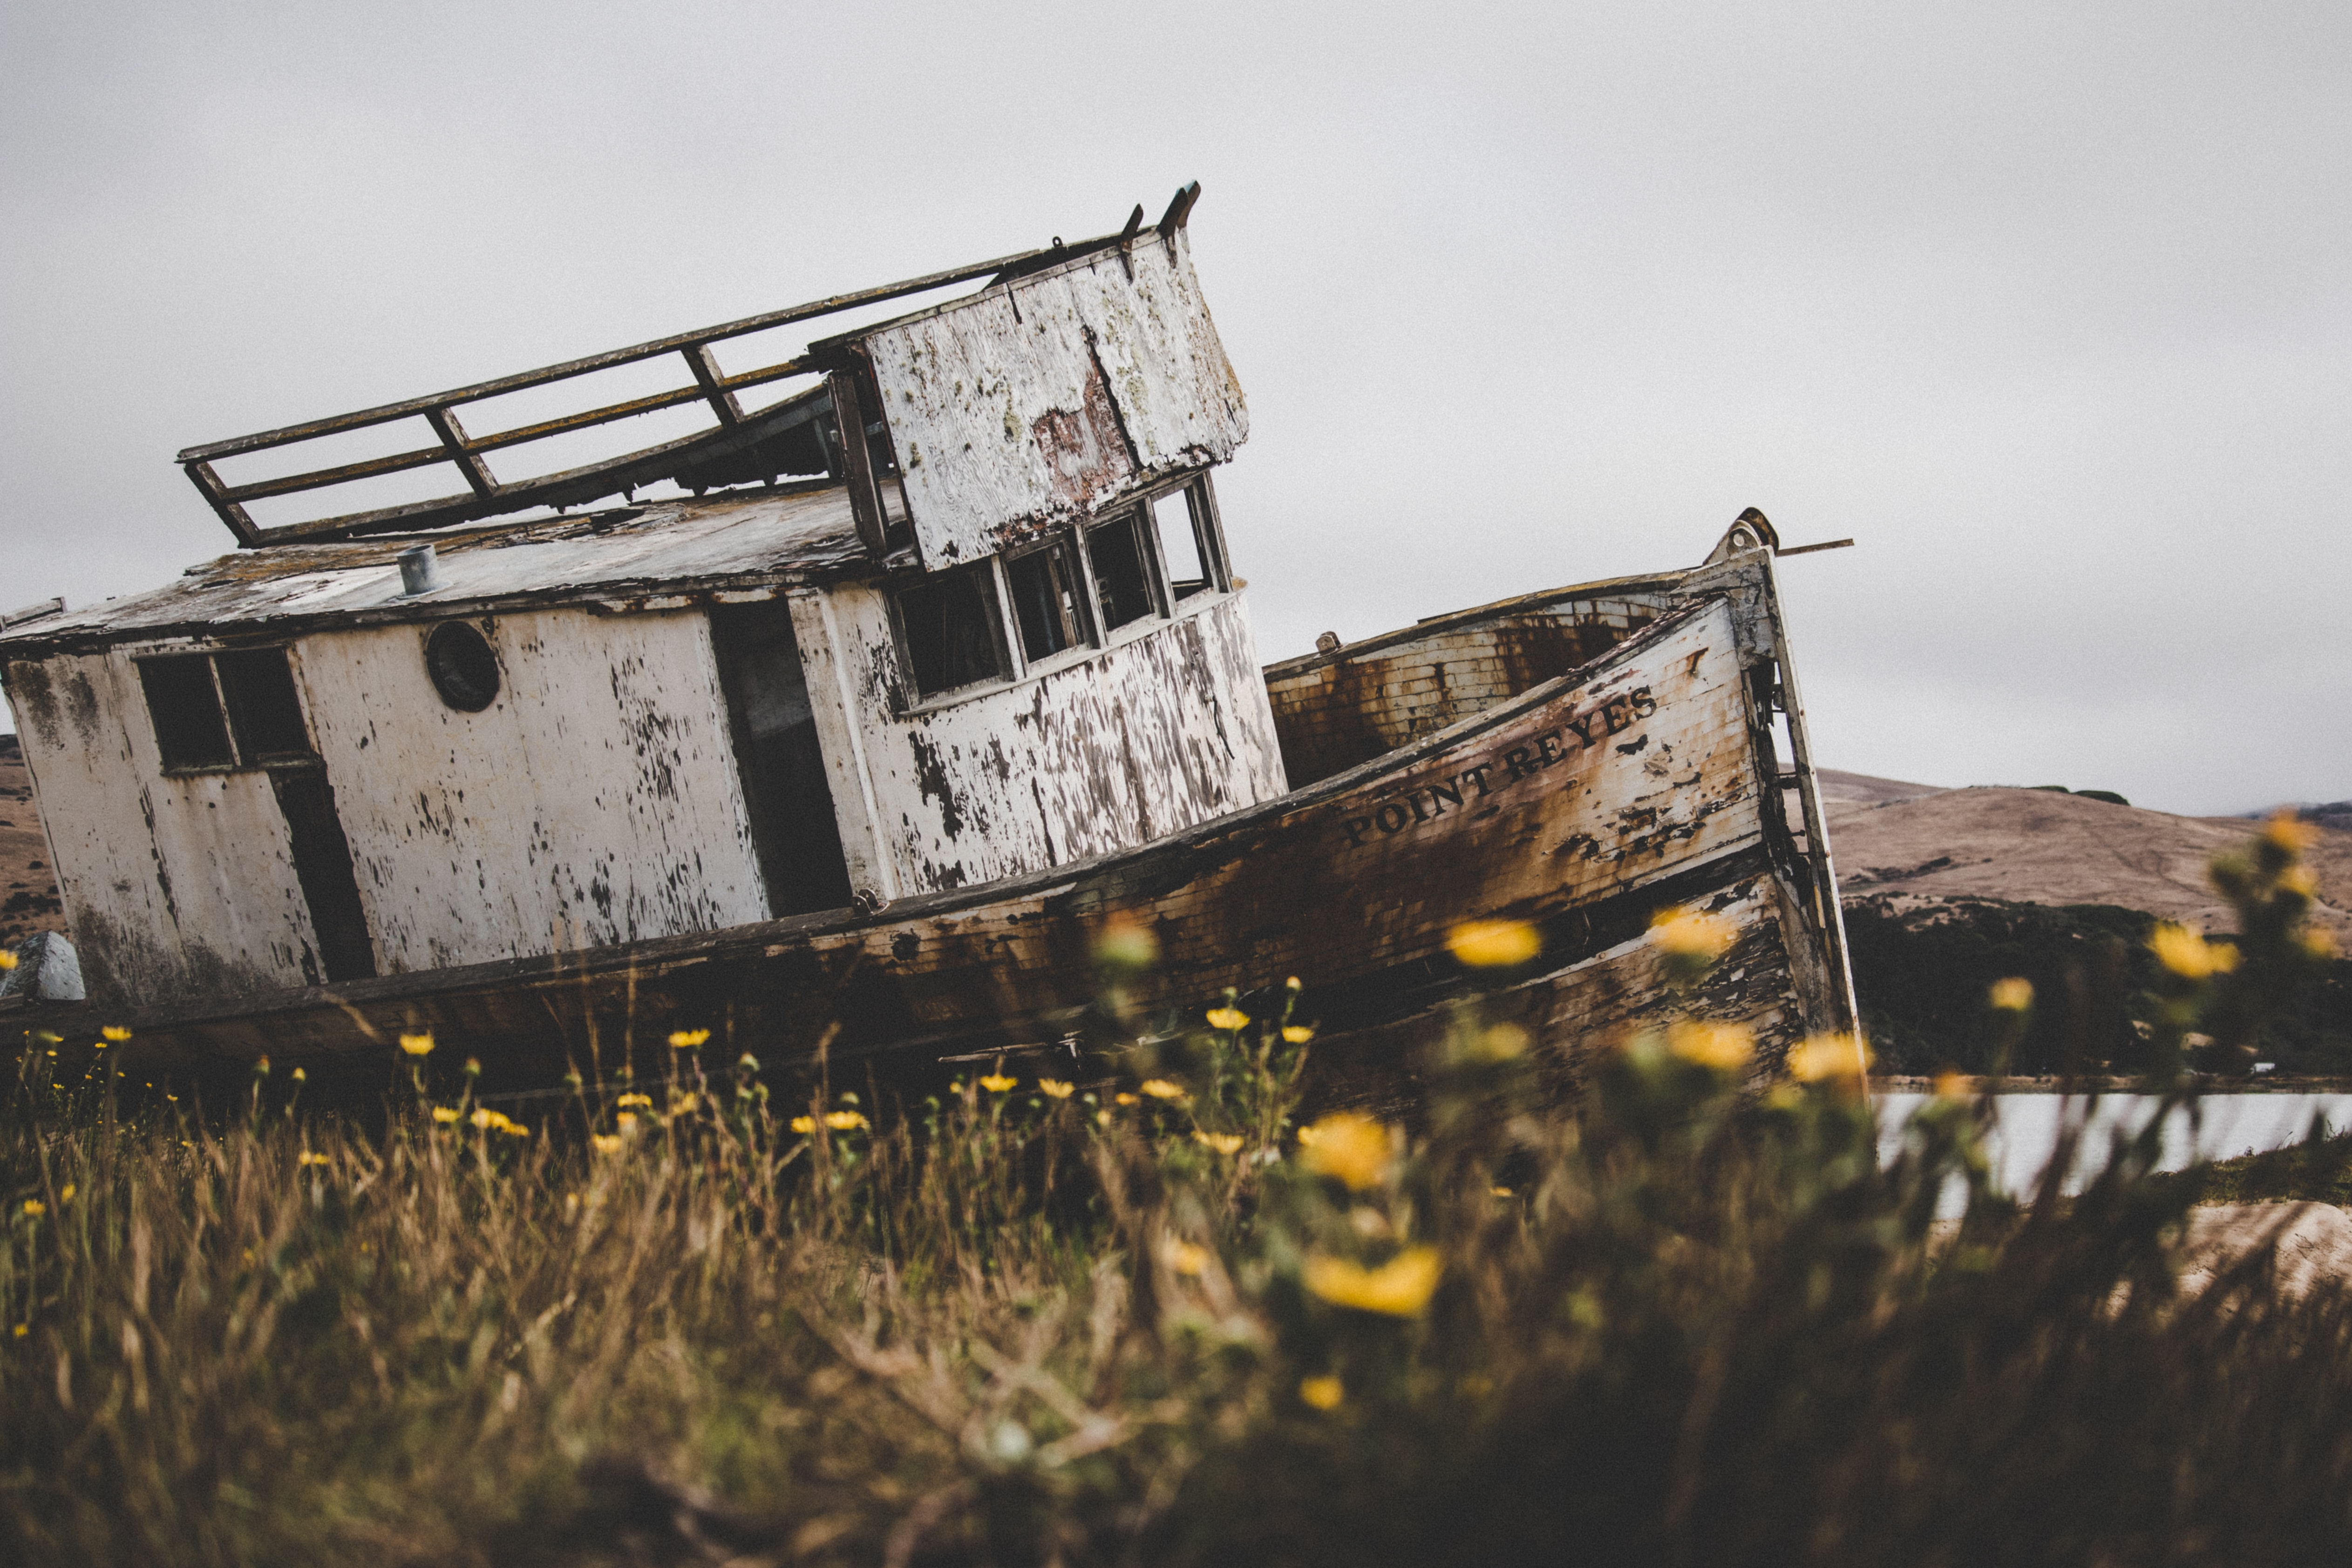 selective focus photography of abandoned tugboat on body of water during daytime